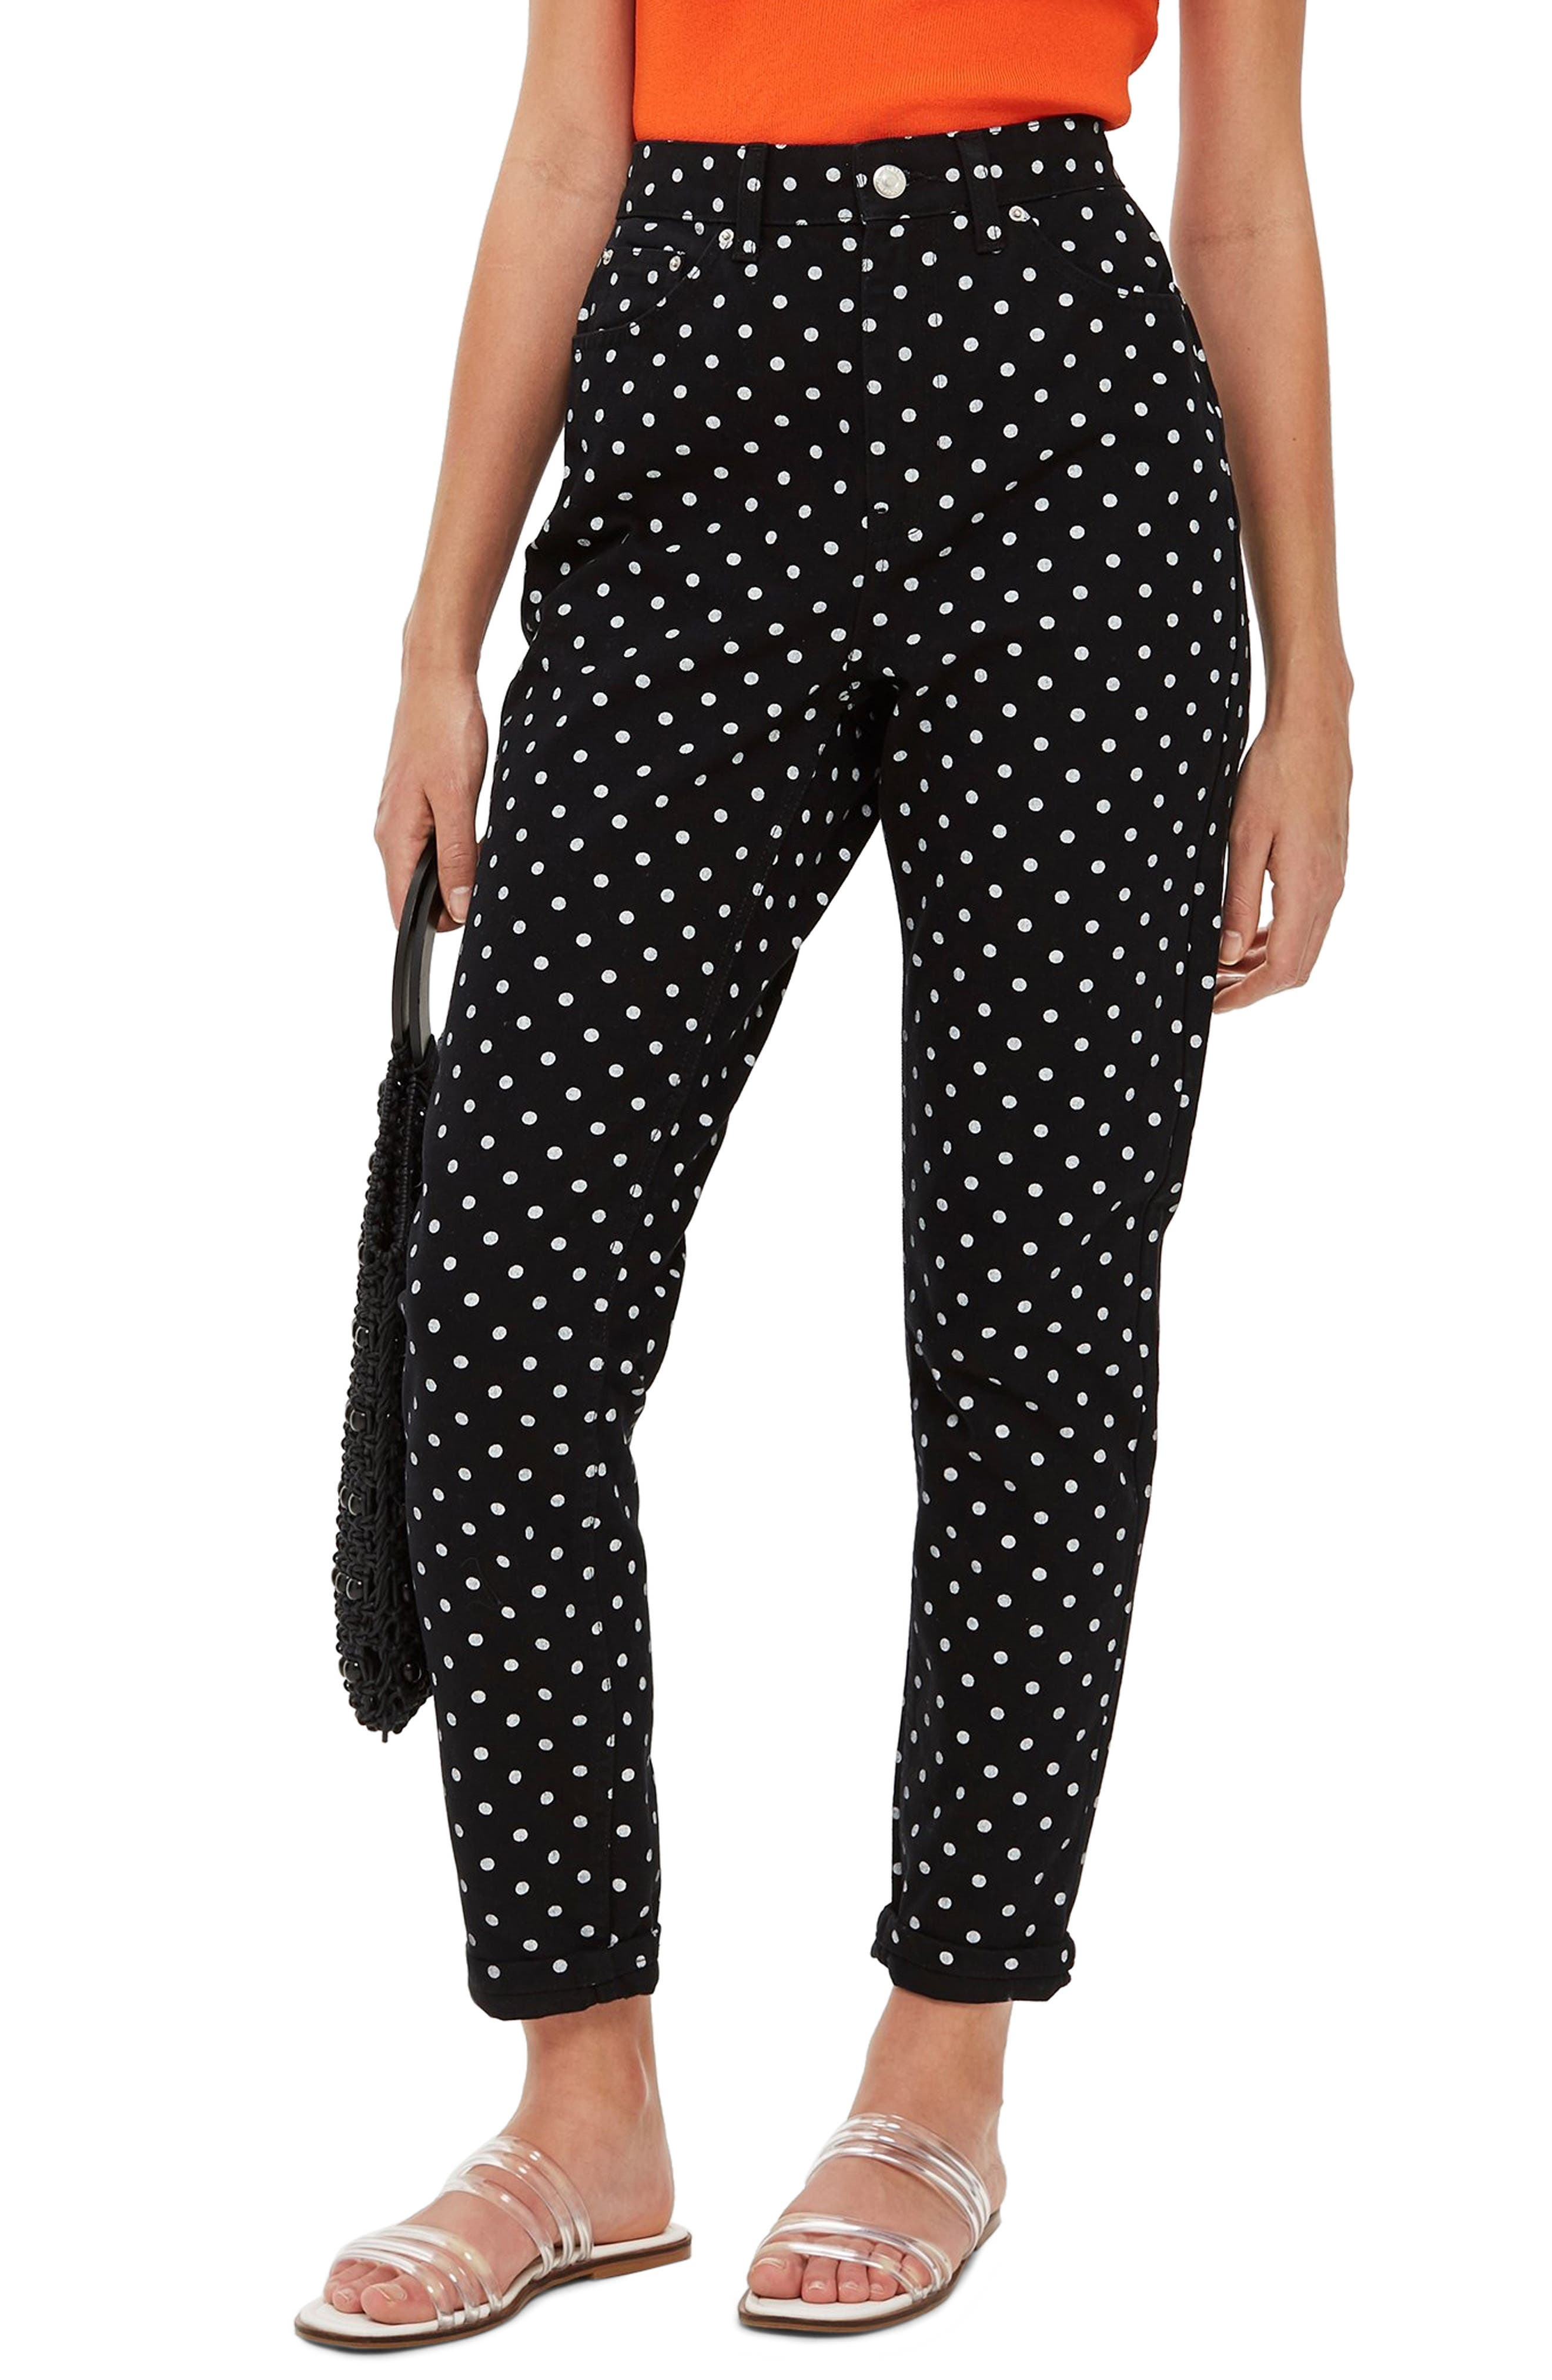 MOTO Polka Dot Mom Jeans,                         Main,                         color, BLACK MULTI